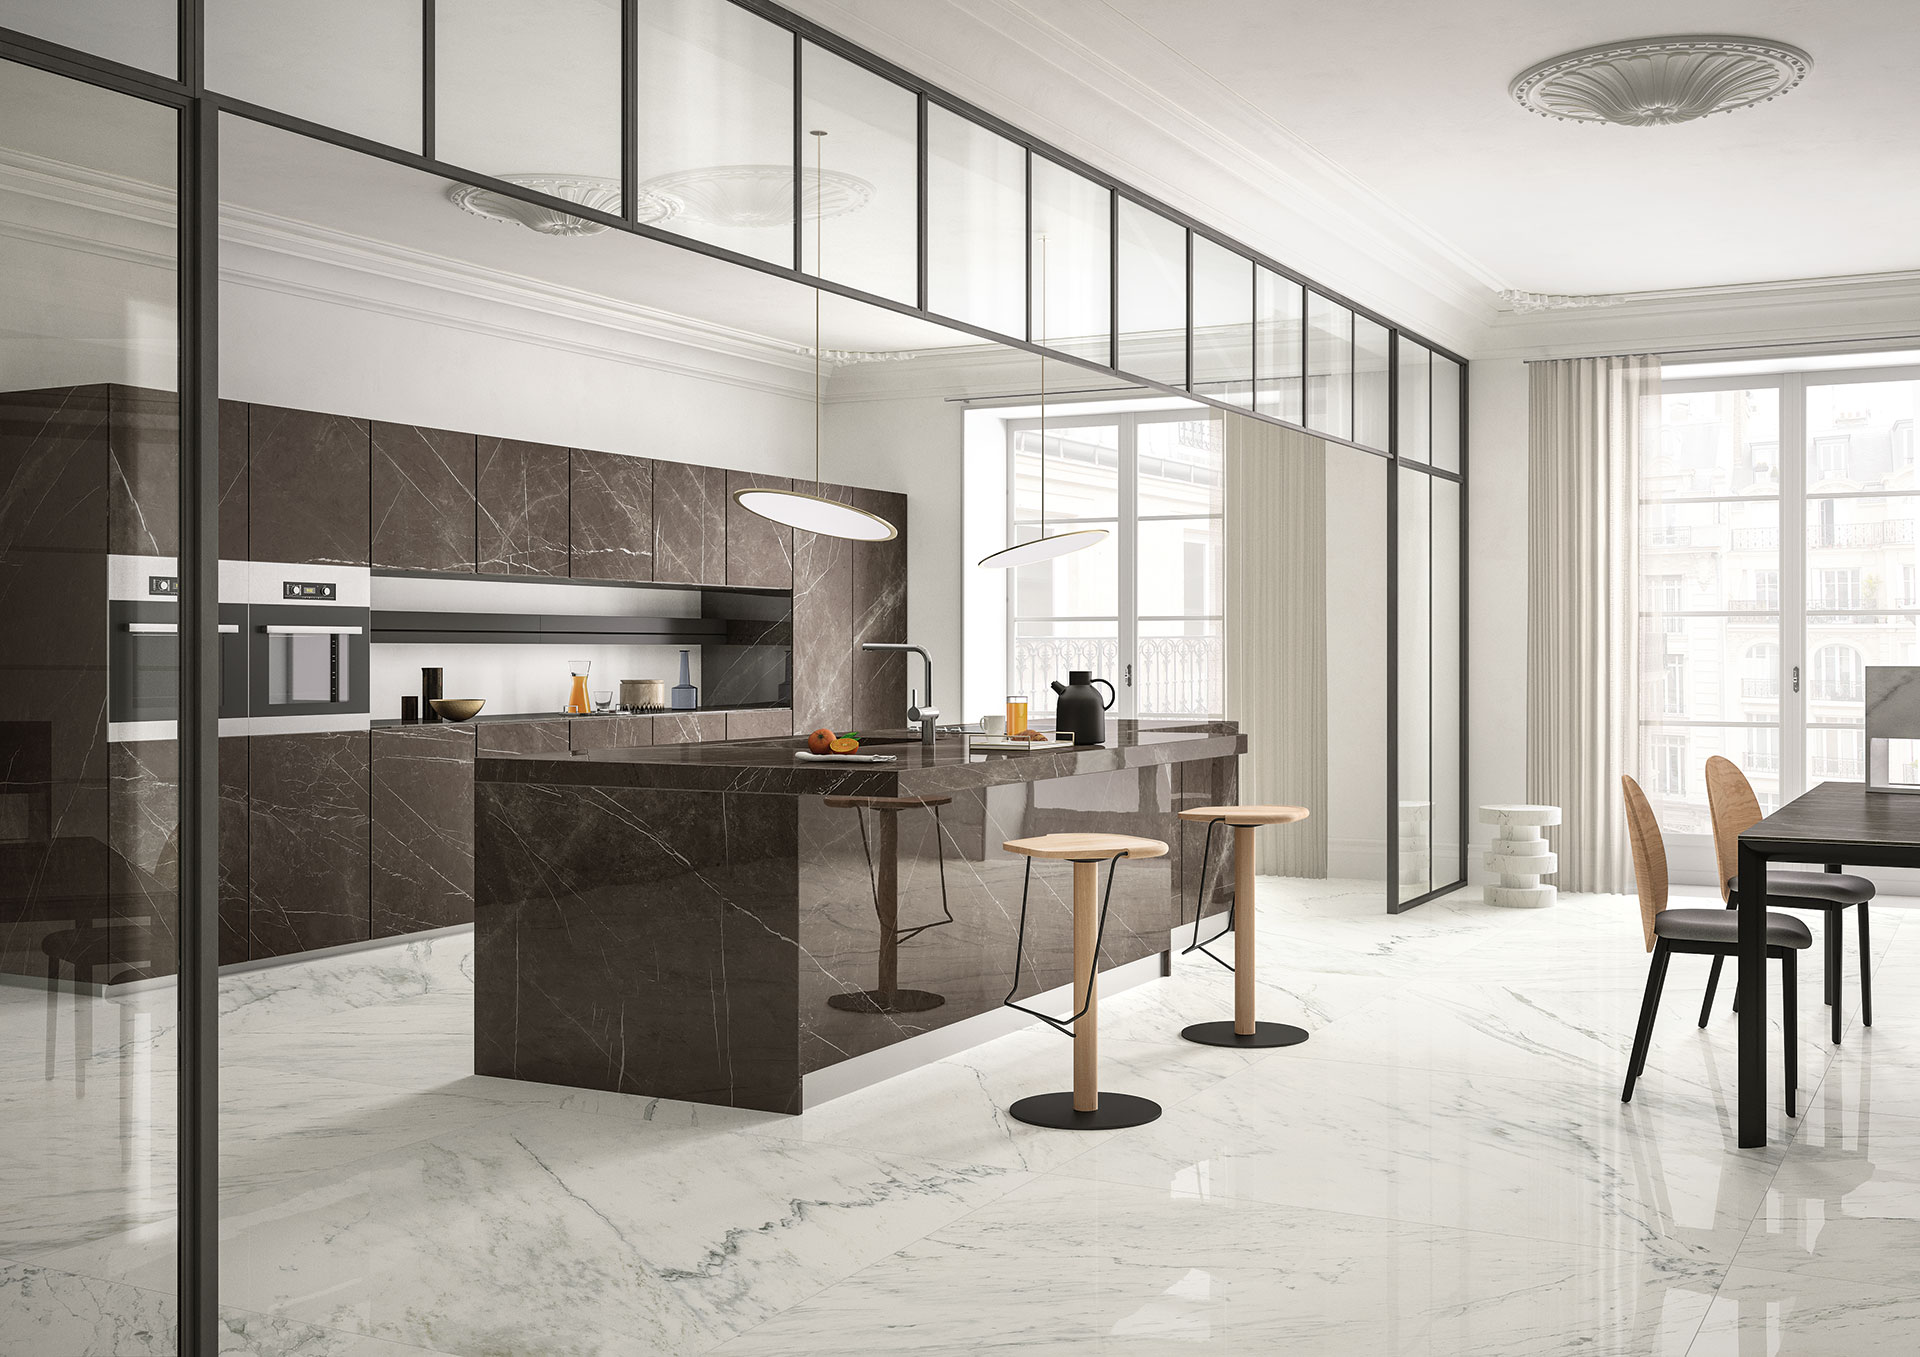 SapienStone: the best porcelain worktop and kitchen countertop